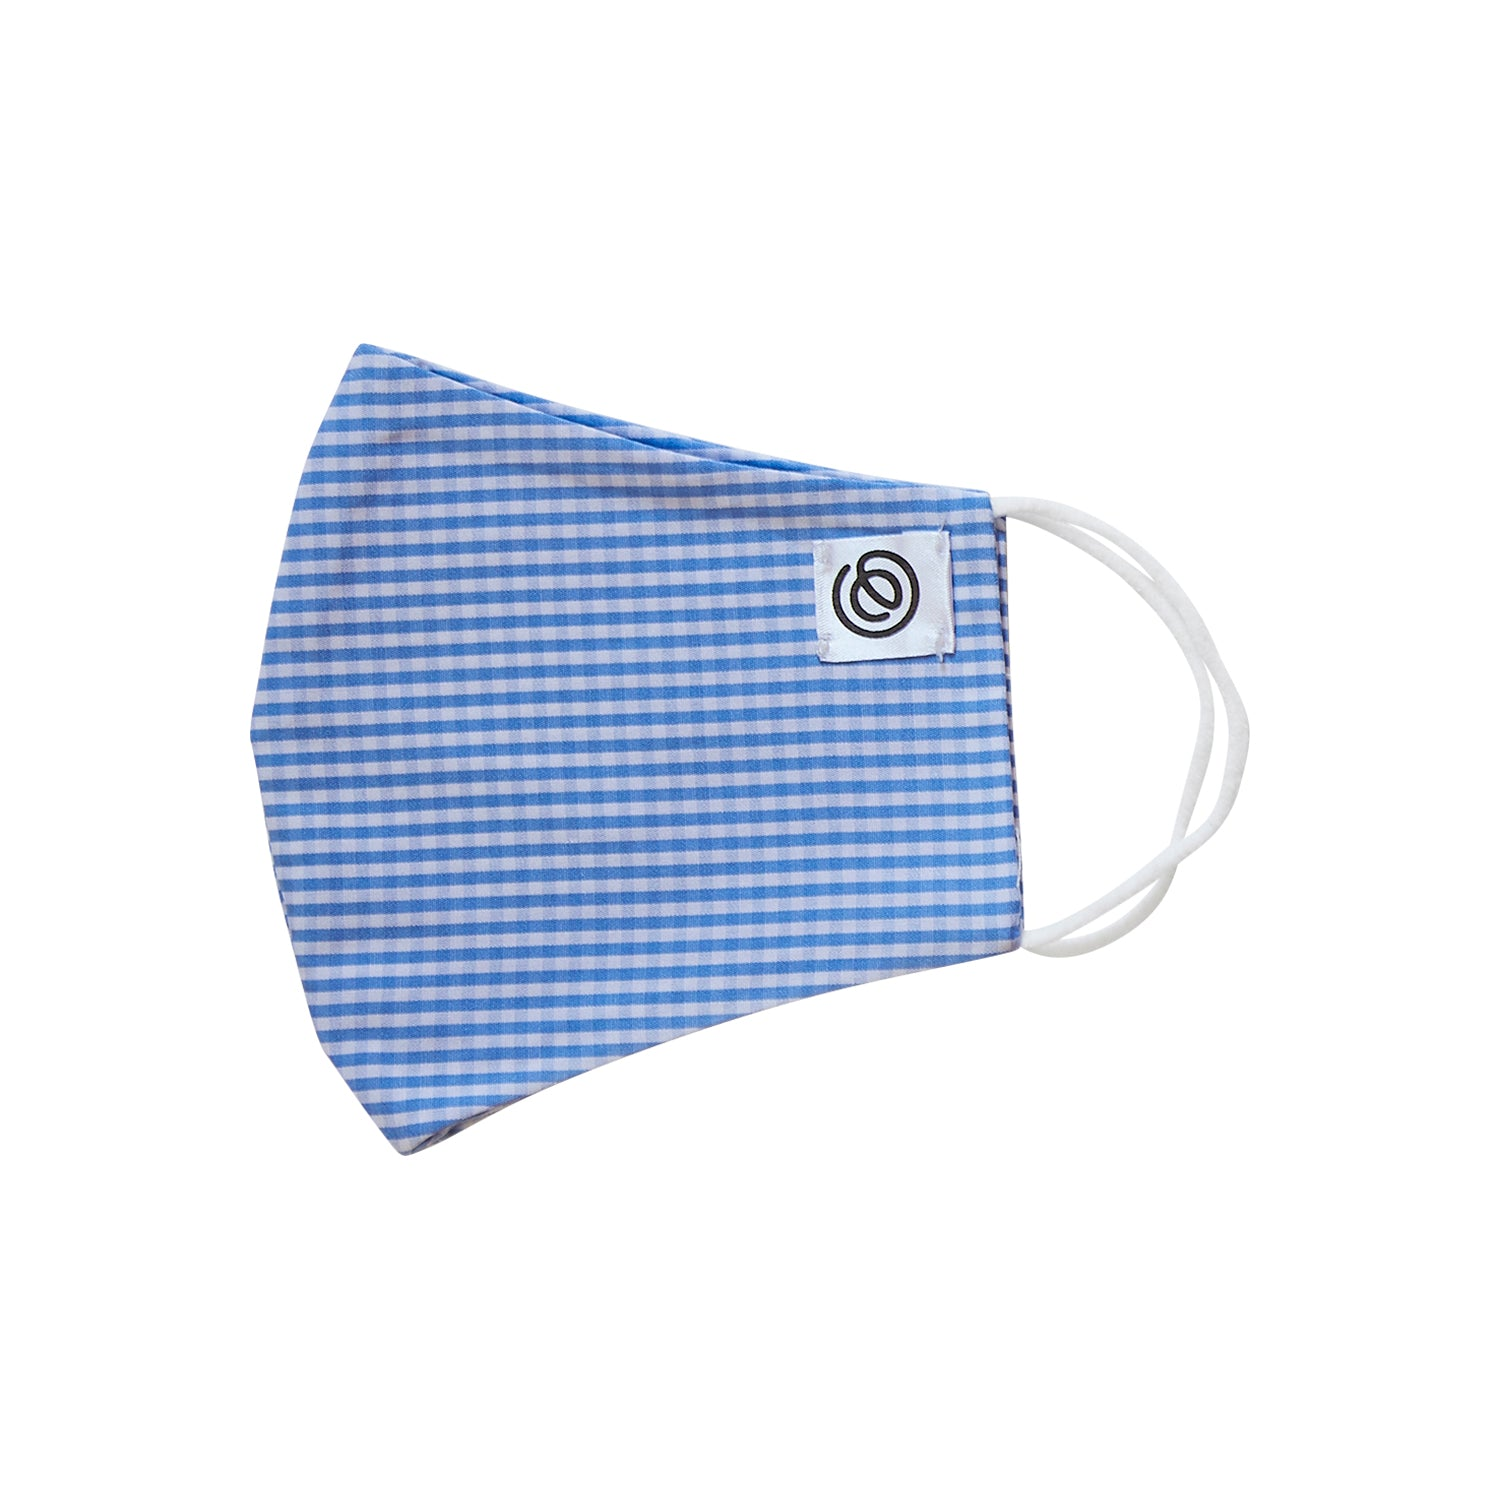 Easy Mask Full Face - Blue Gingham (3 Pack)